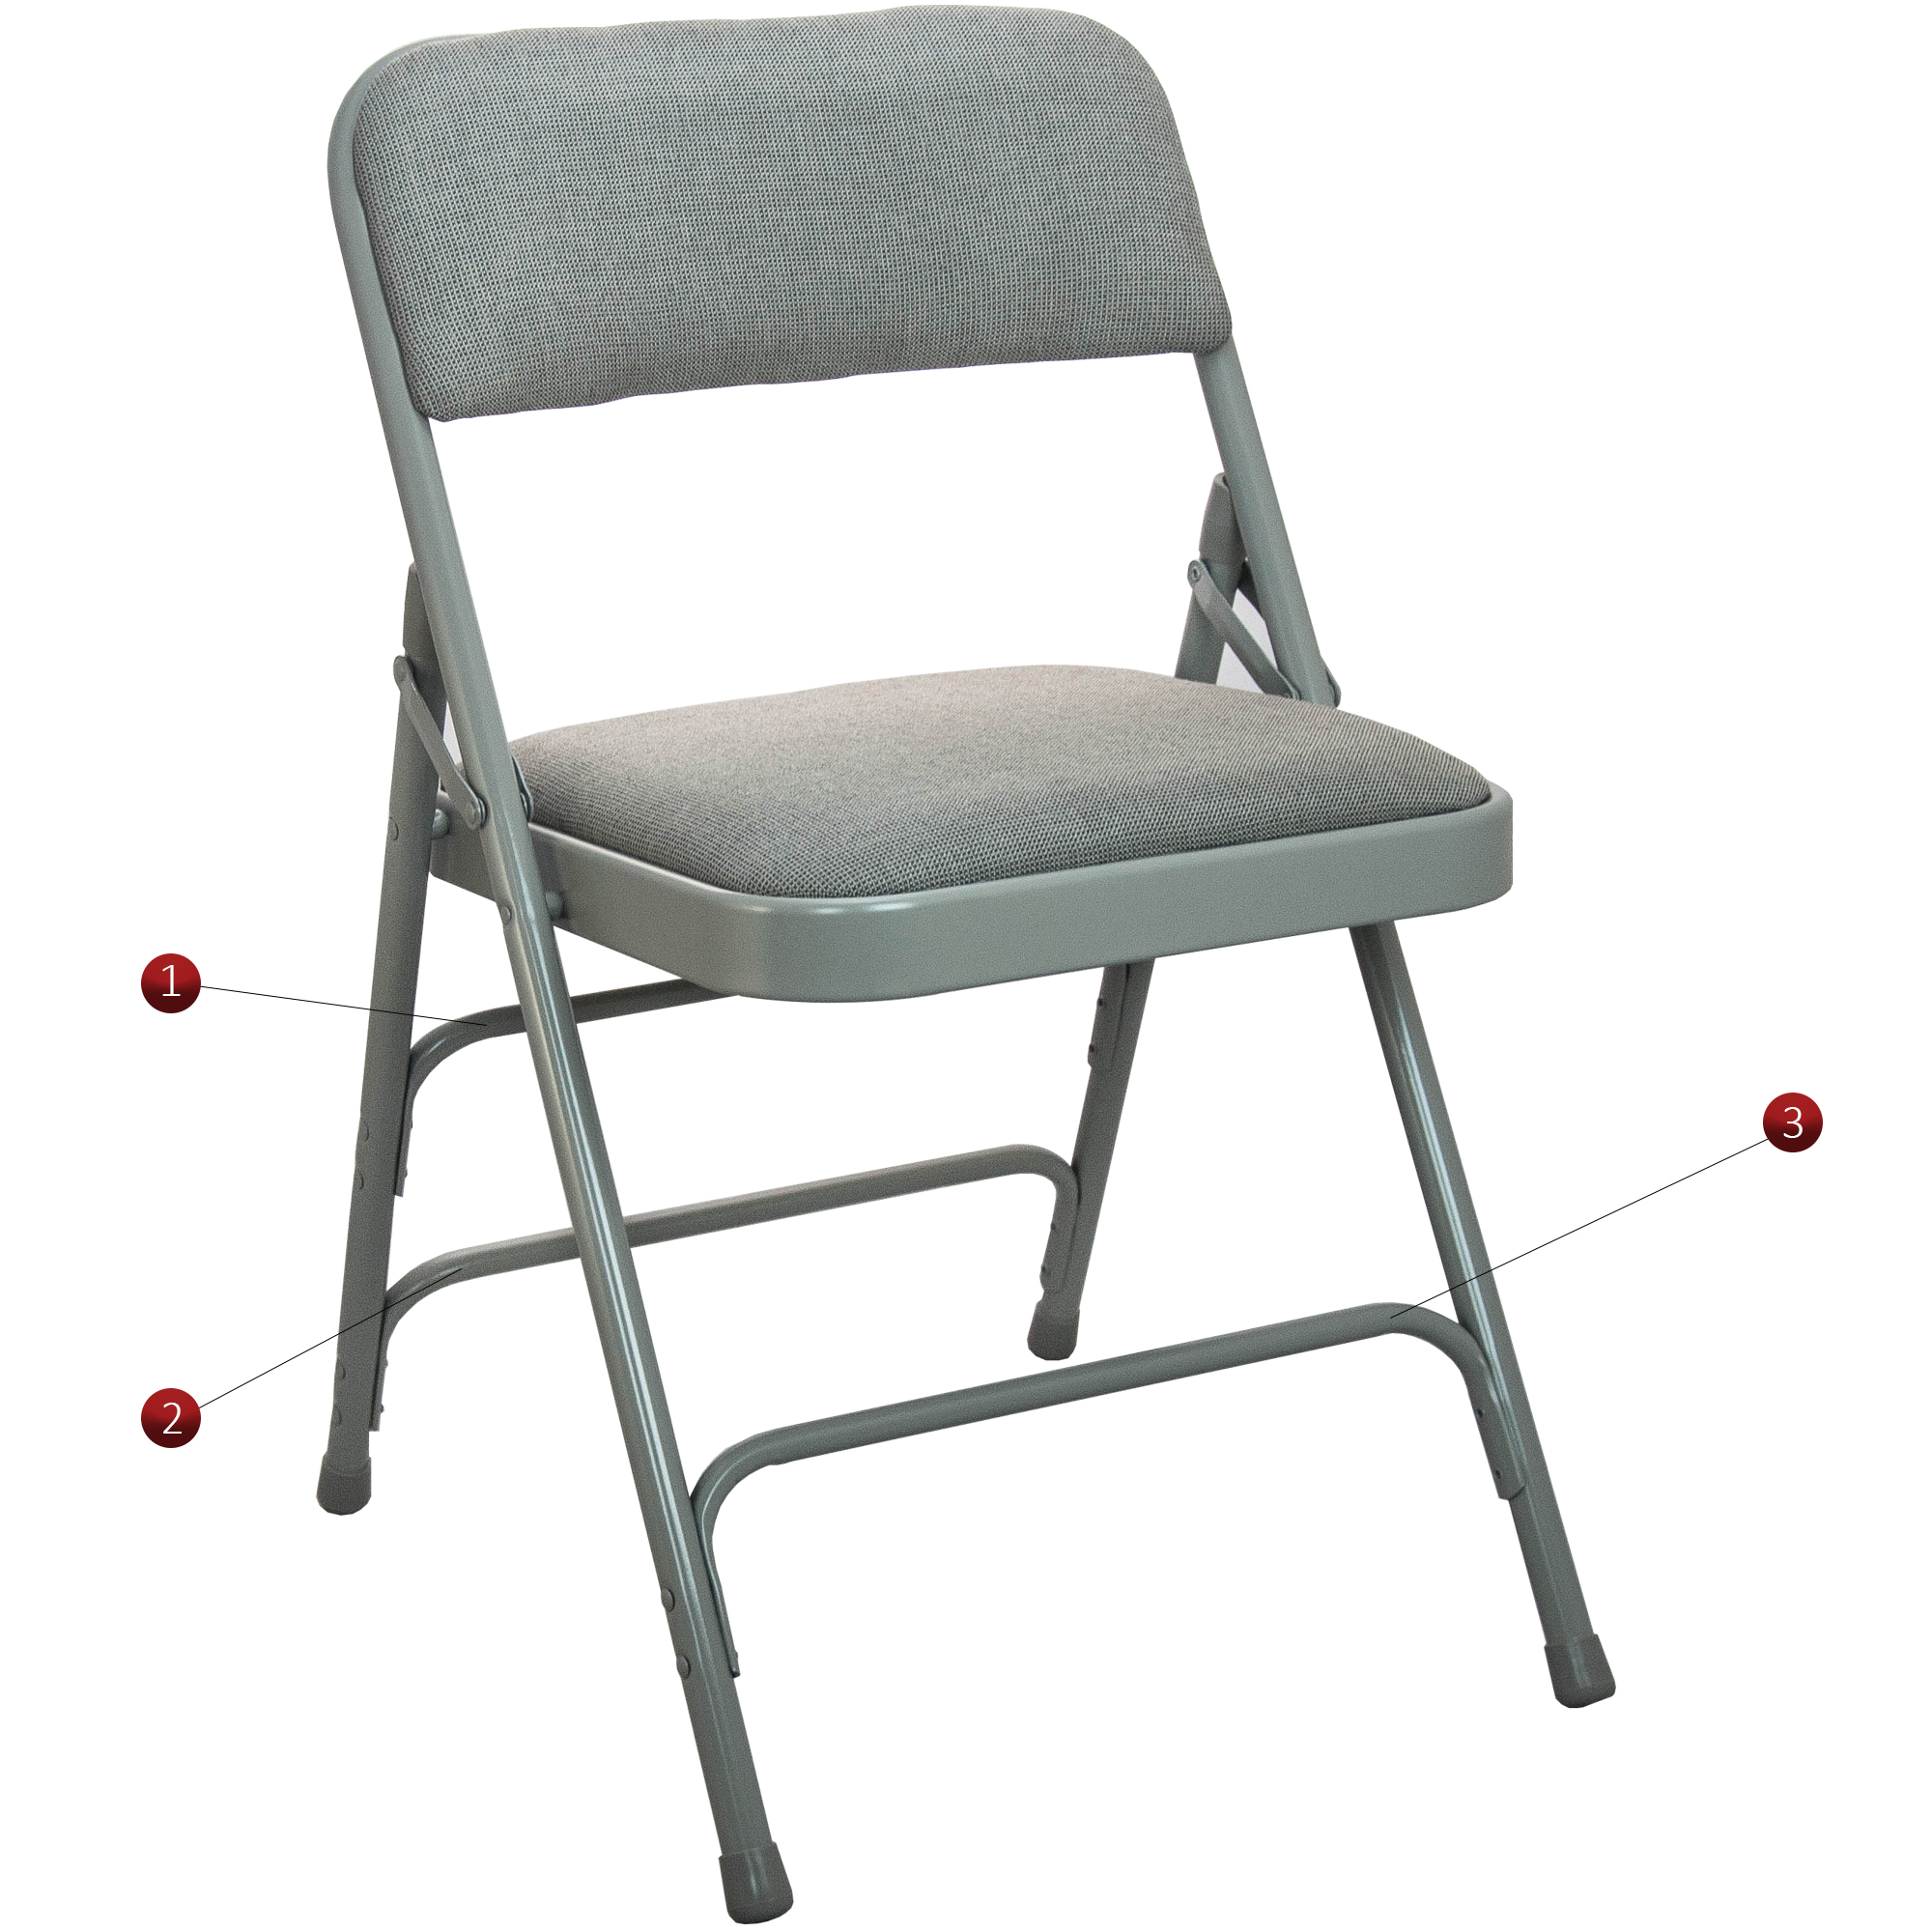 folding chair with cushion hugo steel nz padded chairs advantage series 4pk triple braced and double hinged fabric upholstered metal 1